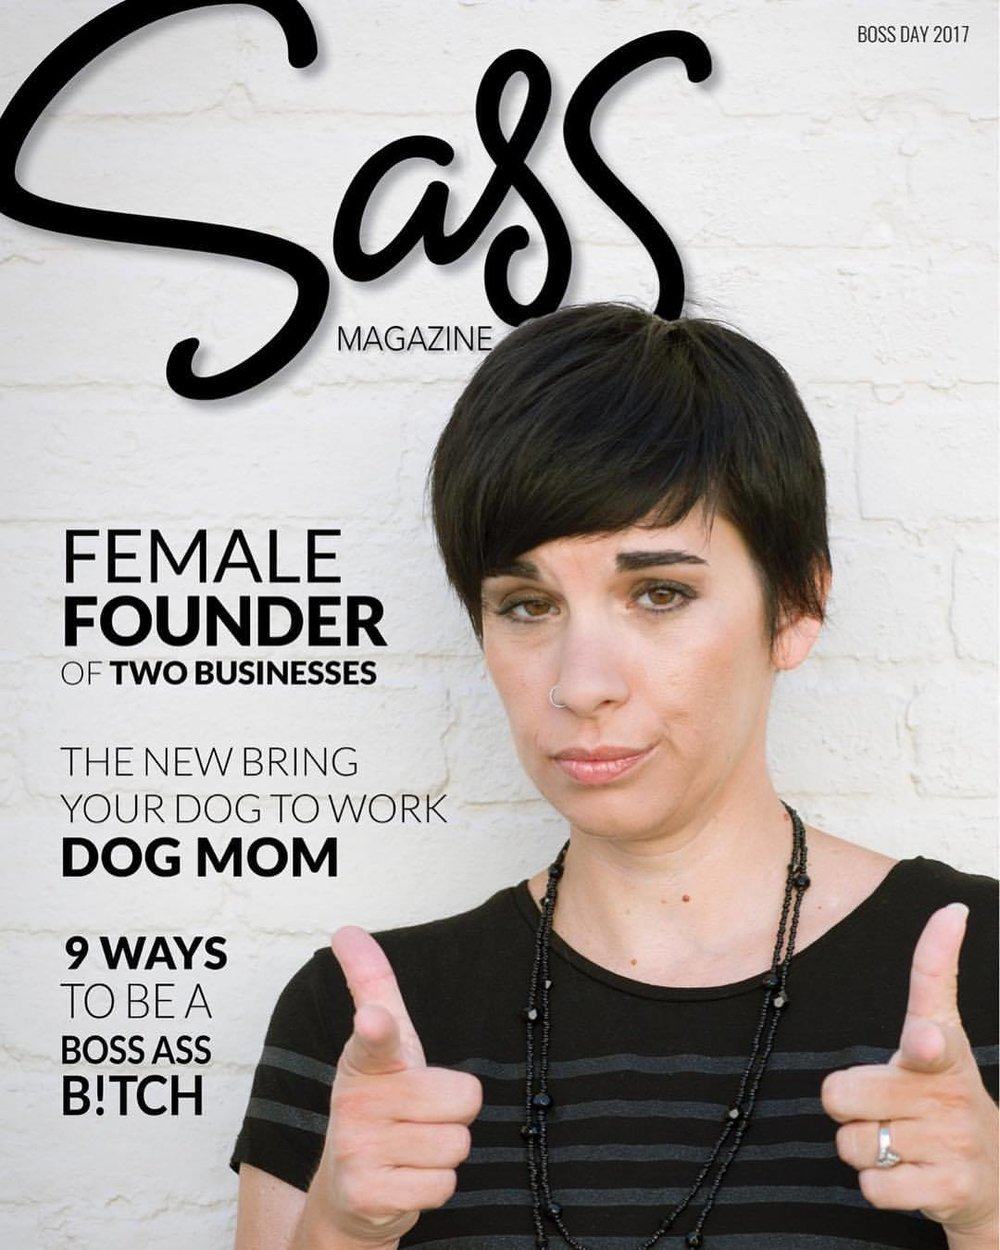 Sass Magazine Mock Cover with Kim Dow on cover